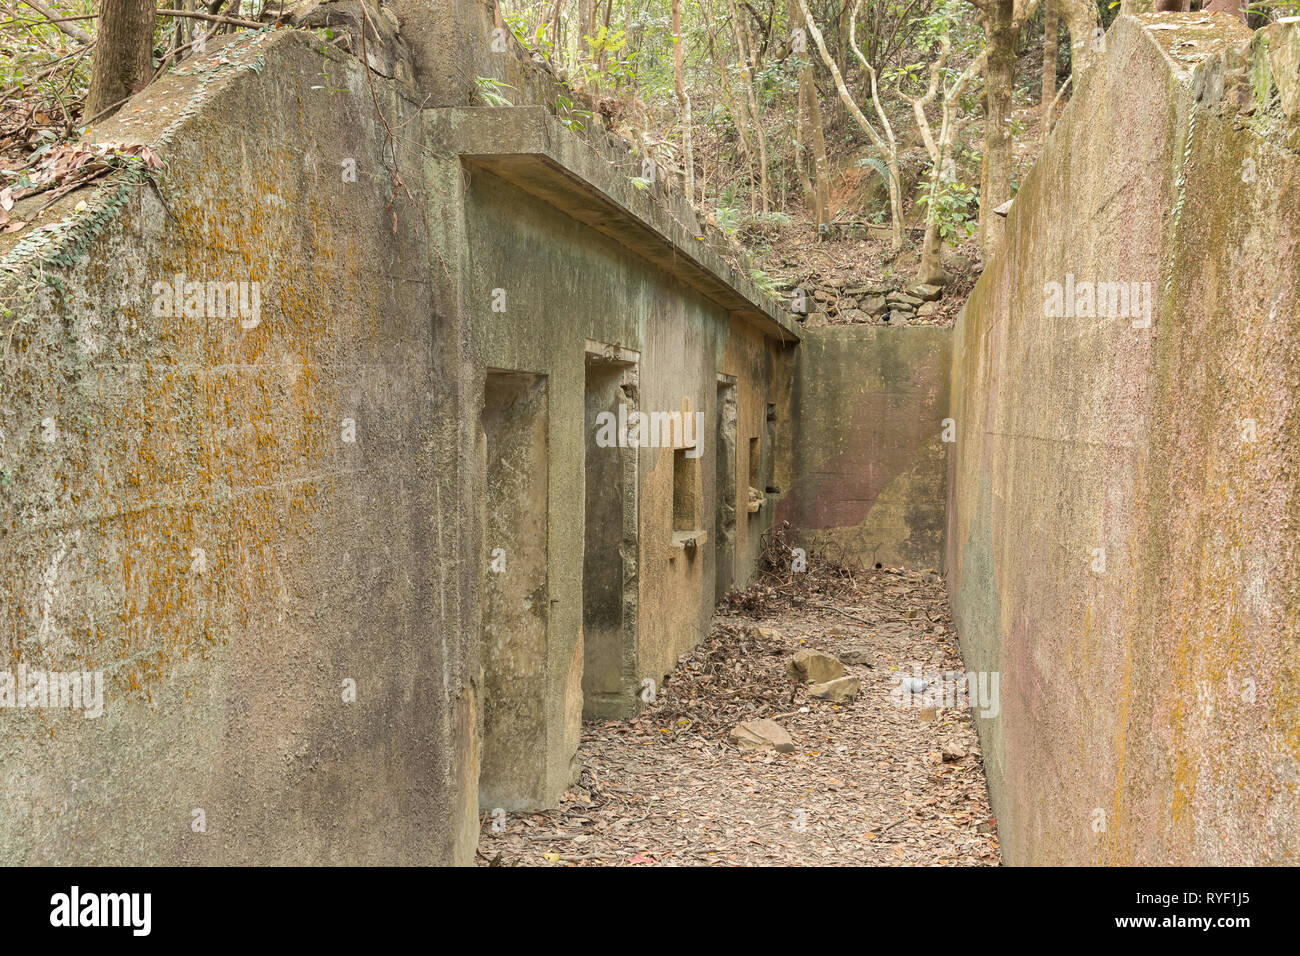 Pinewood Battery, an overgrown and abandoned British military position near Victoria Peak, Hong Kong Island. - Stock Image